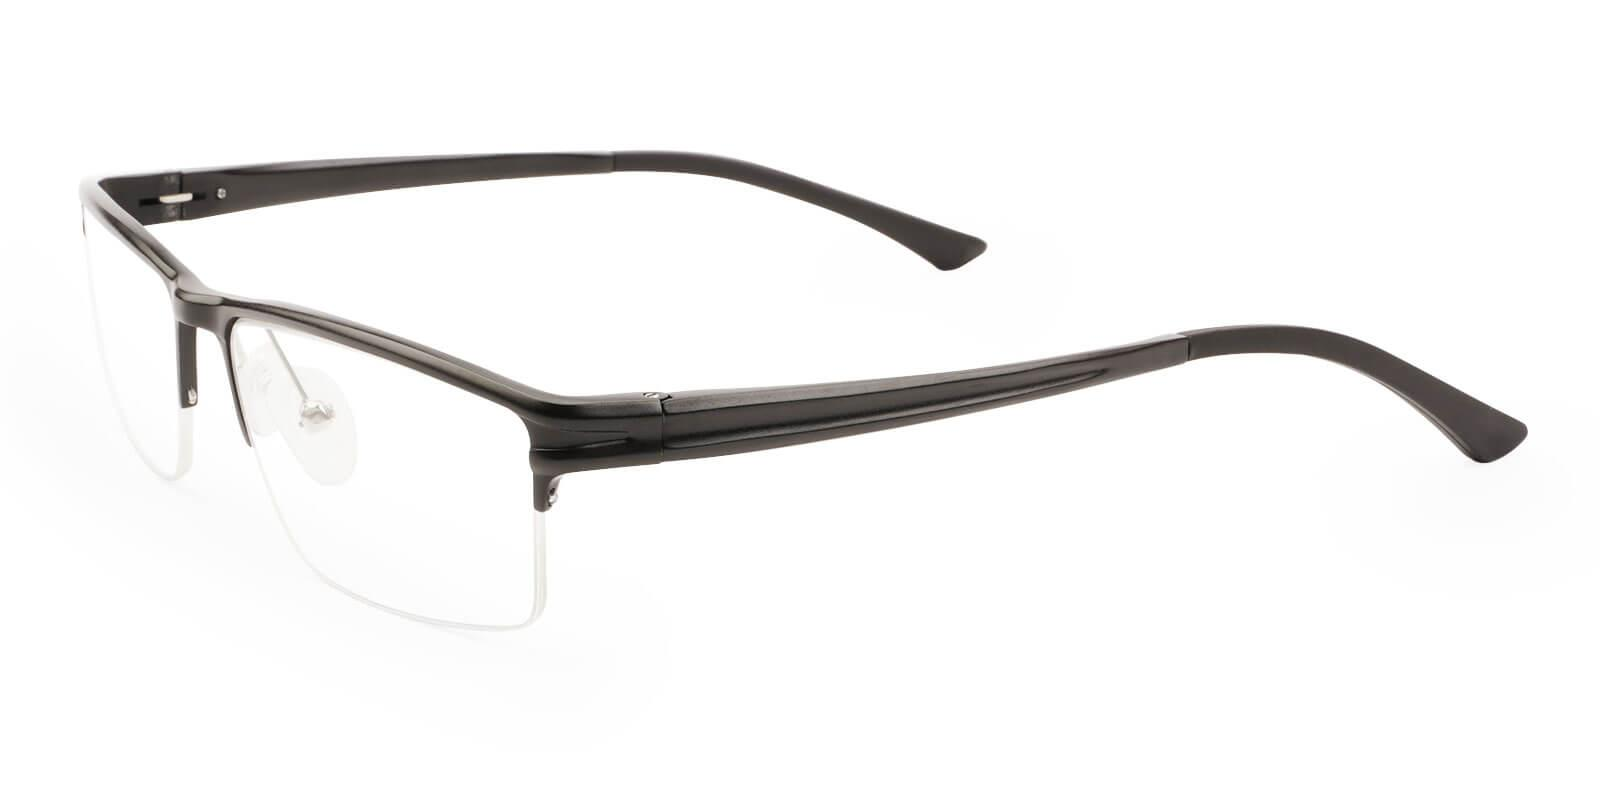 Seagull Black Metal NosePads , SportsGlasses , SpringHinges Frames from ABBE Glasses